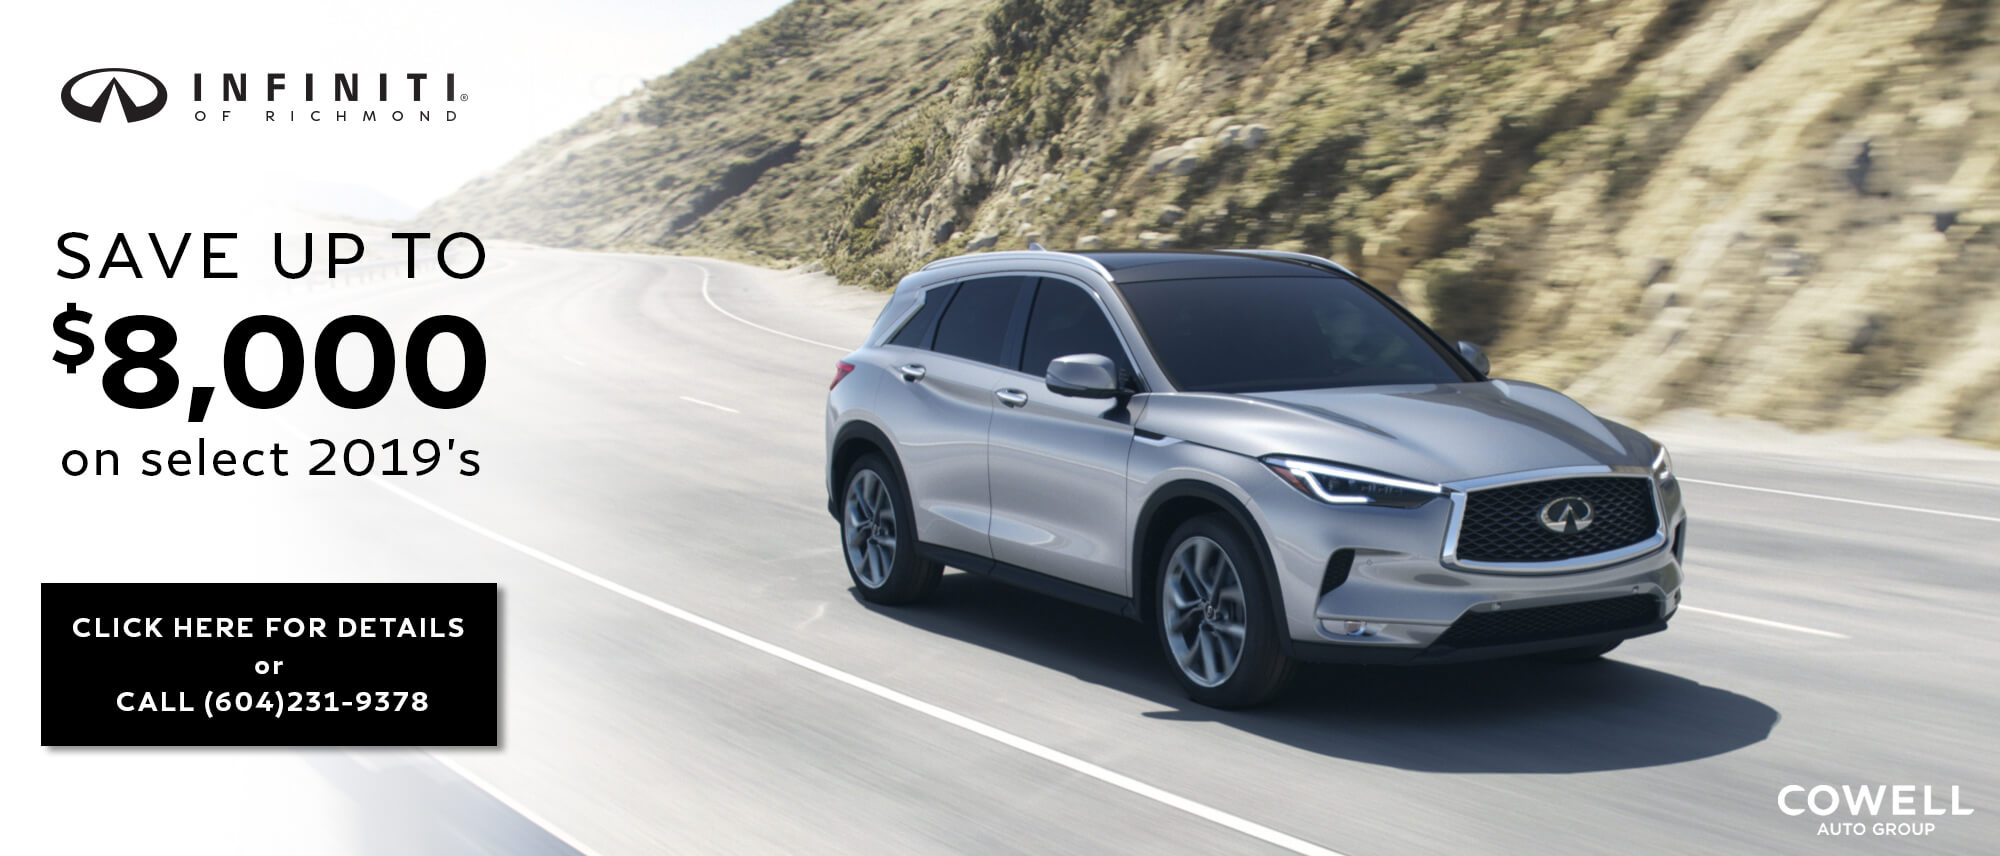 2019 QX50, Infiniti of Richmond in Metro Vancouver, luxury car dealership